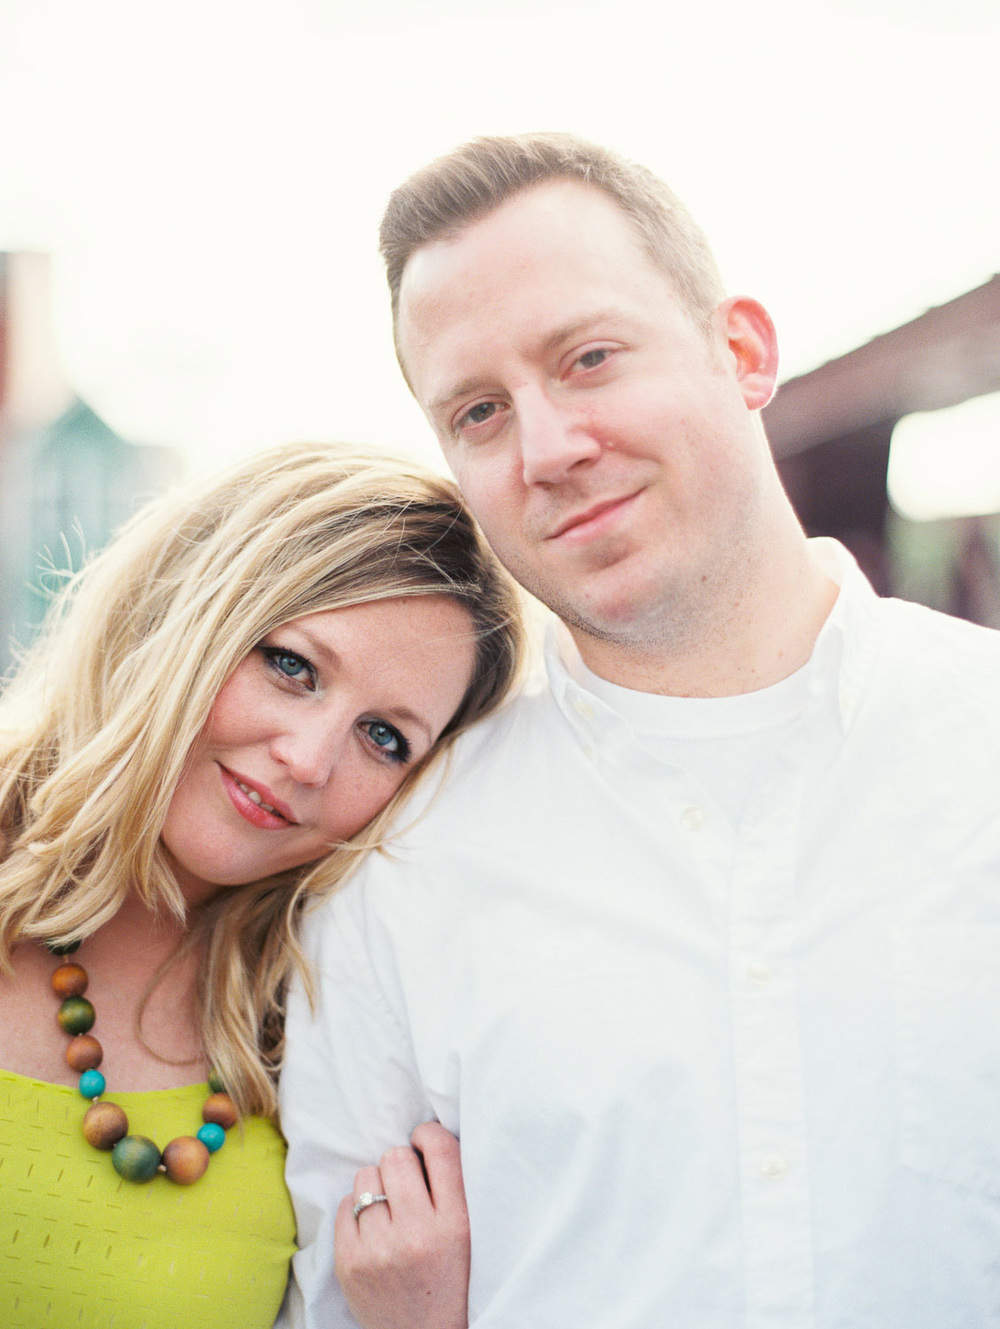 kateweinsteinphoto_andreadave_engagement_42.jpg